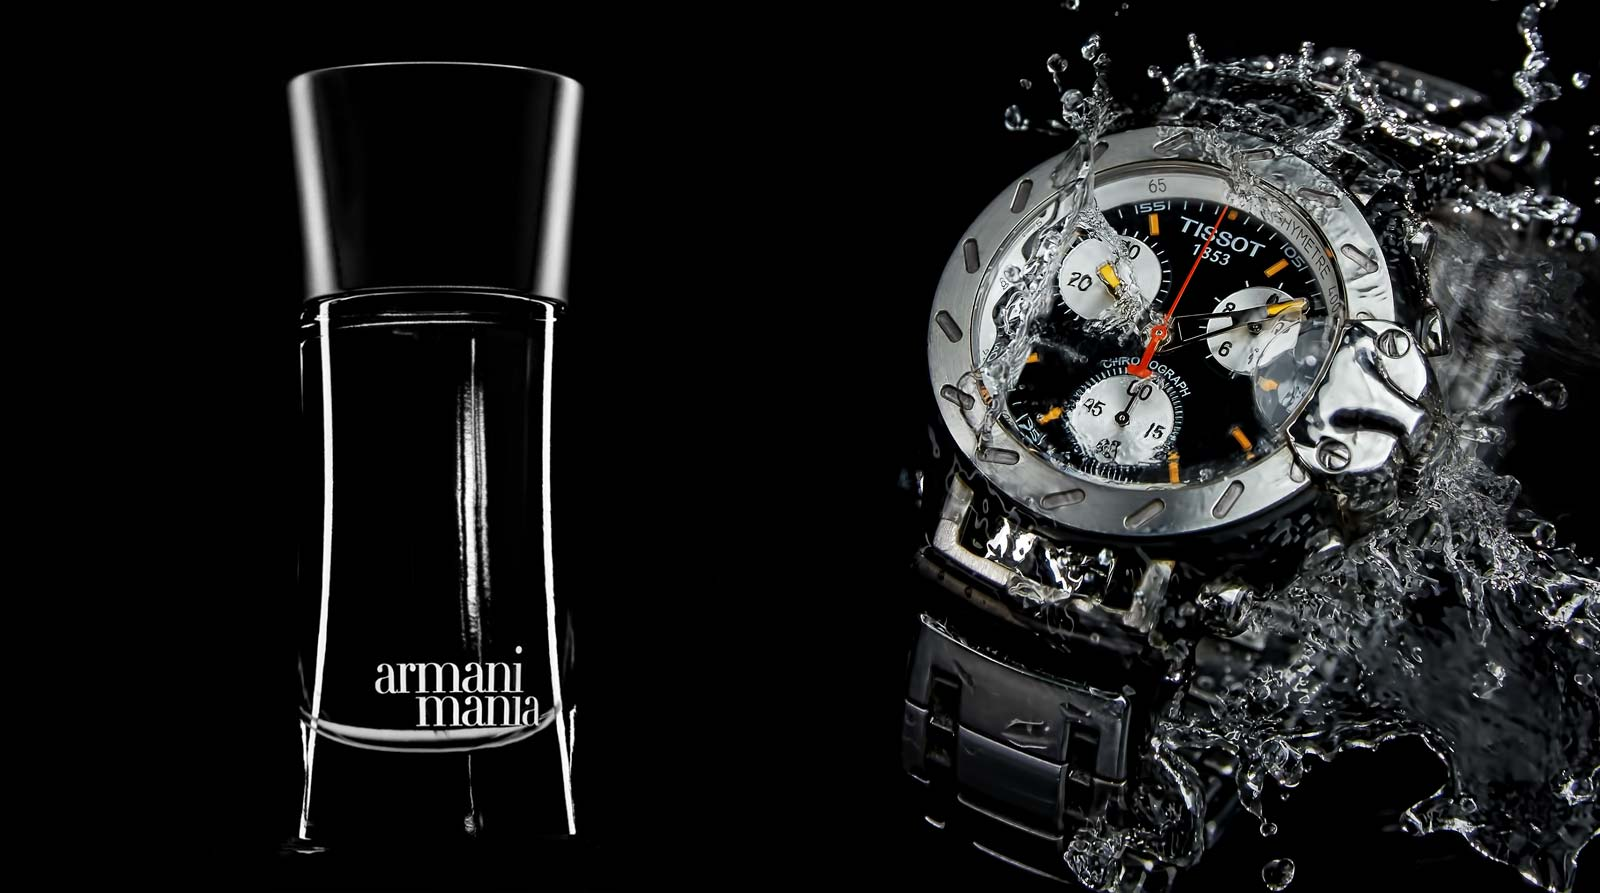 StrobiStrip in Product Photography